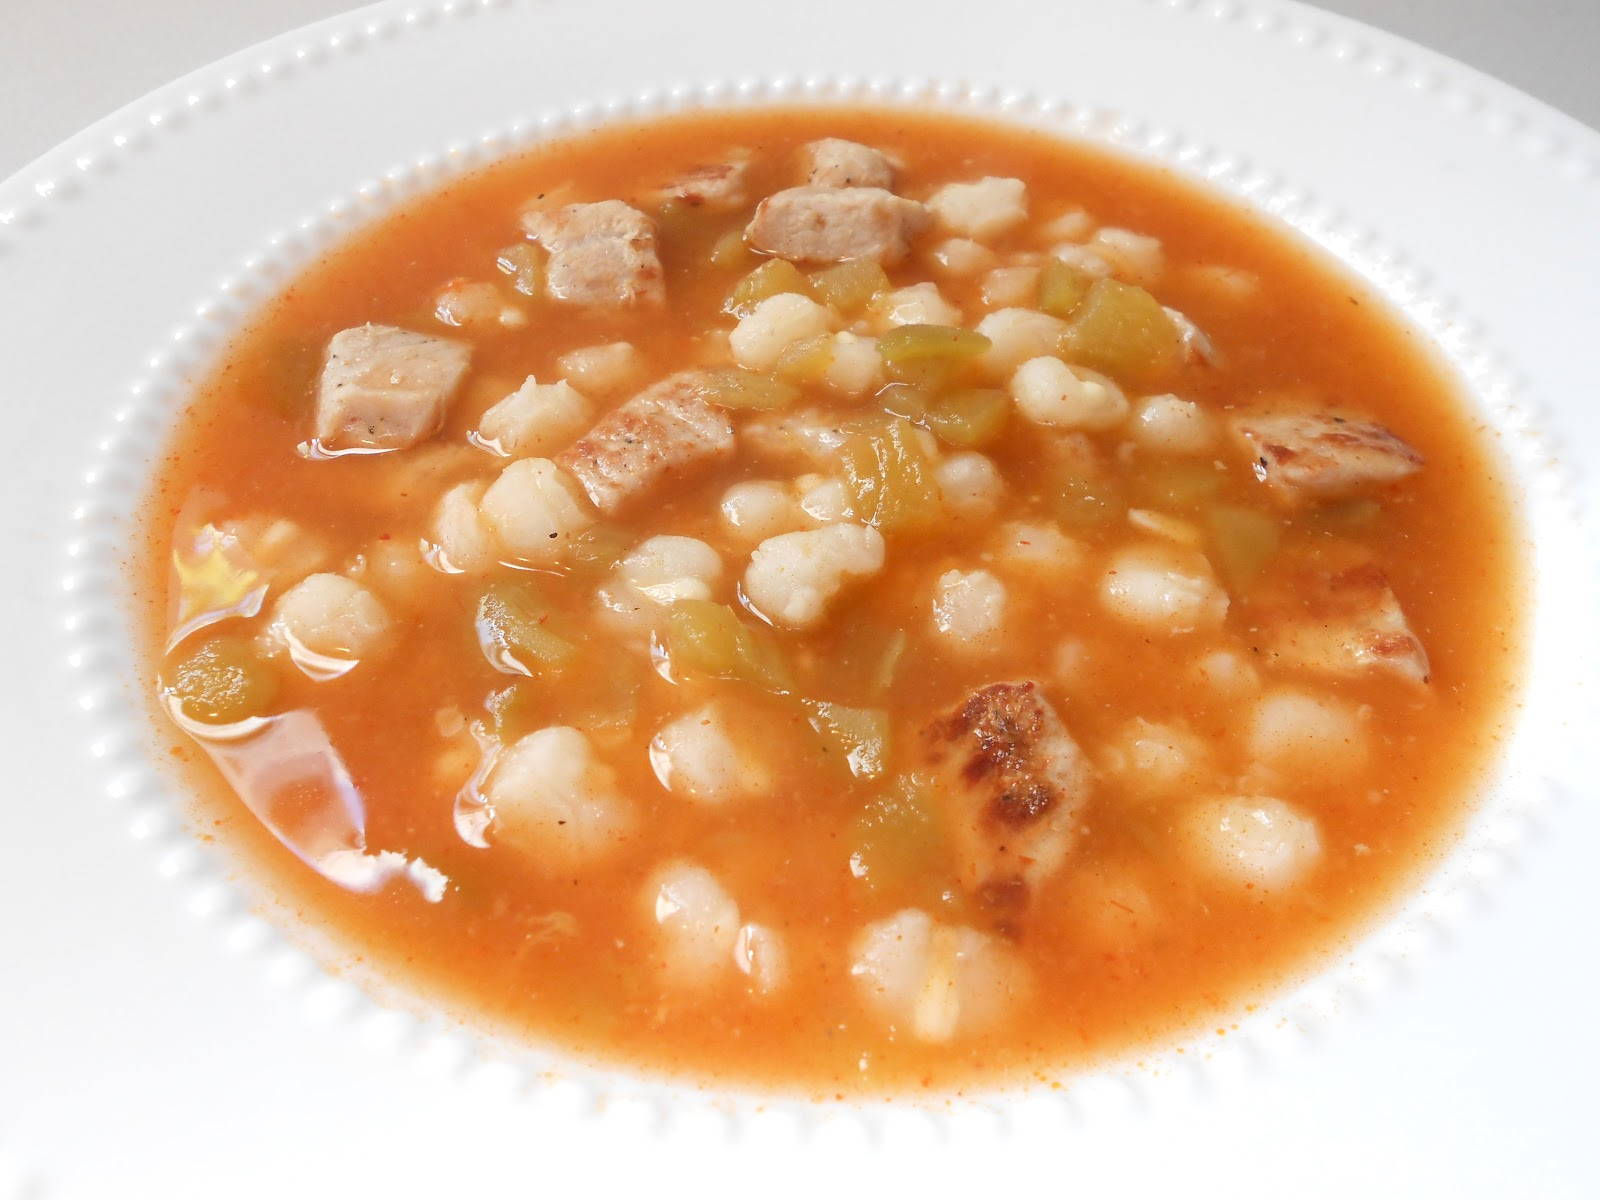 My Kind of Cooking: Slow Cooker Posole